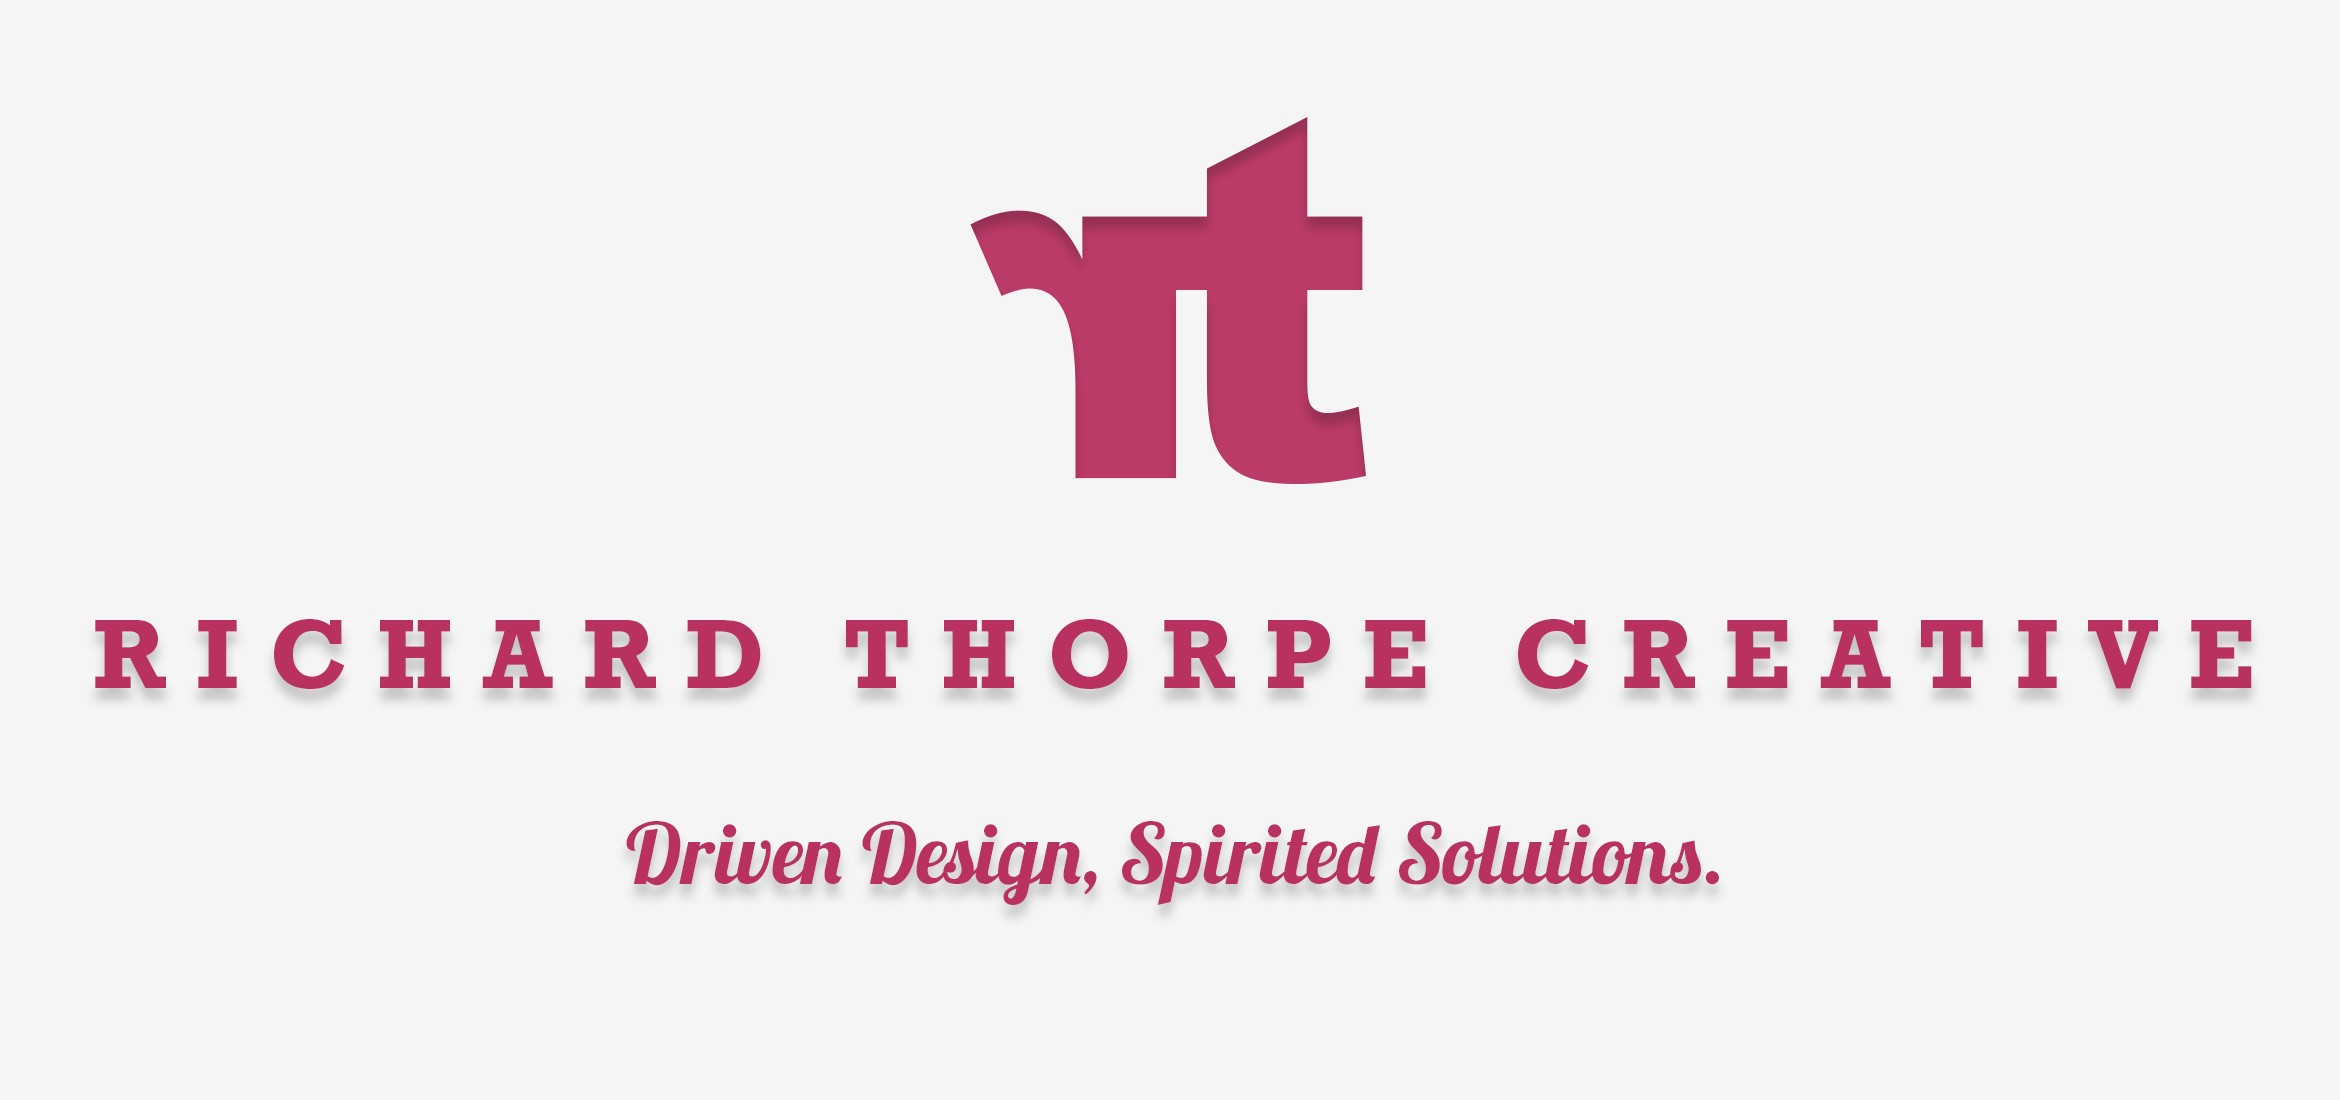 Richard Thorpe Creative